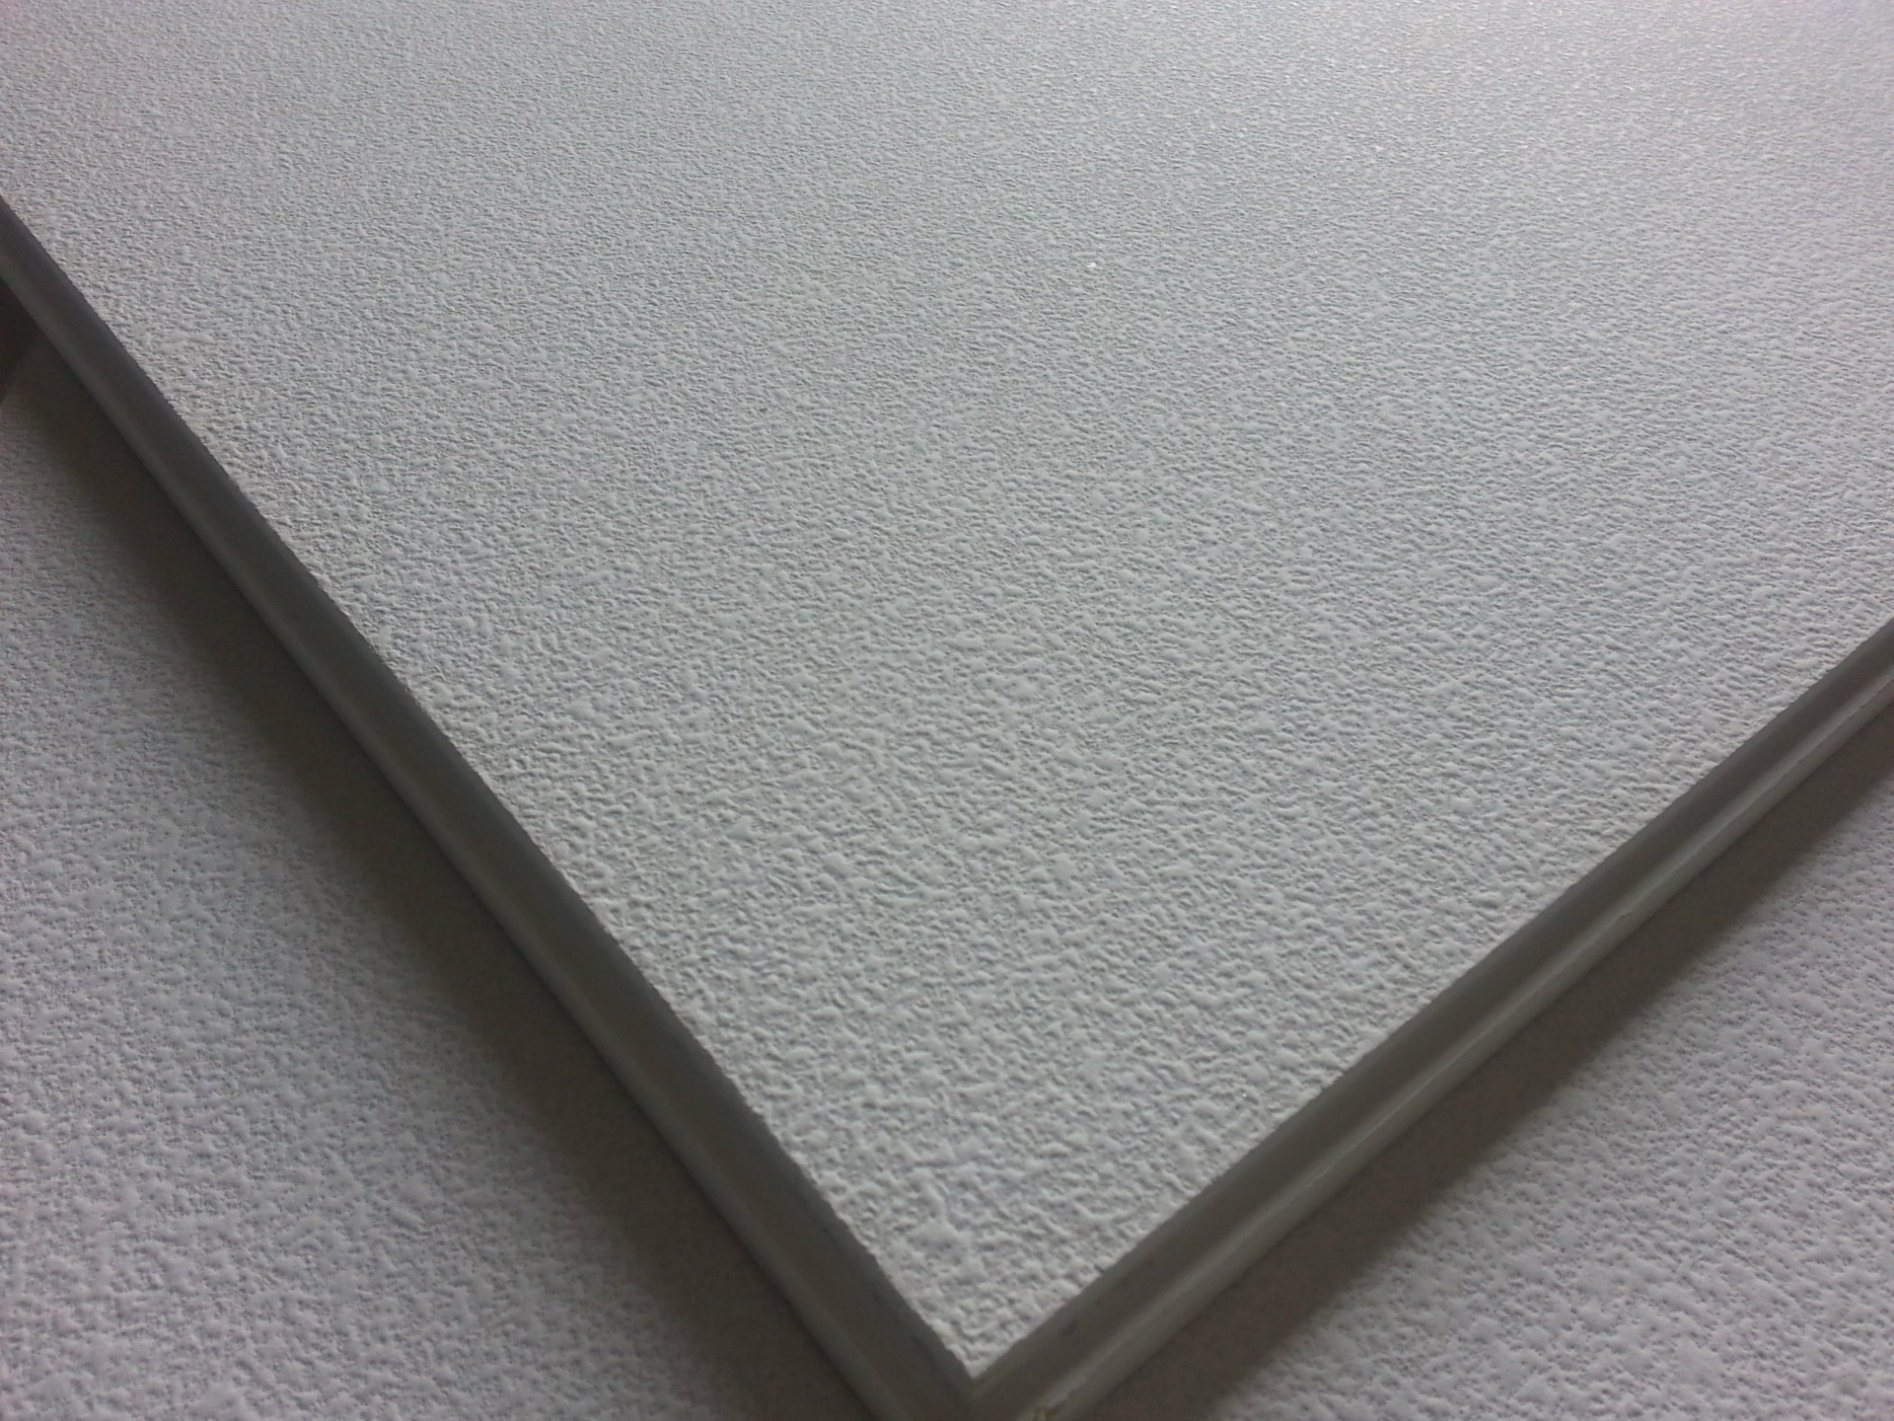 tile x tiles building supplies acoustic com ceilings armstrong lowes common shop in ceiling at actual pl